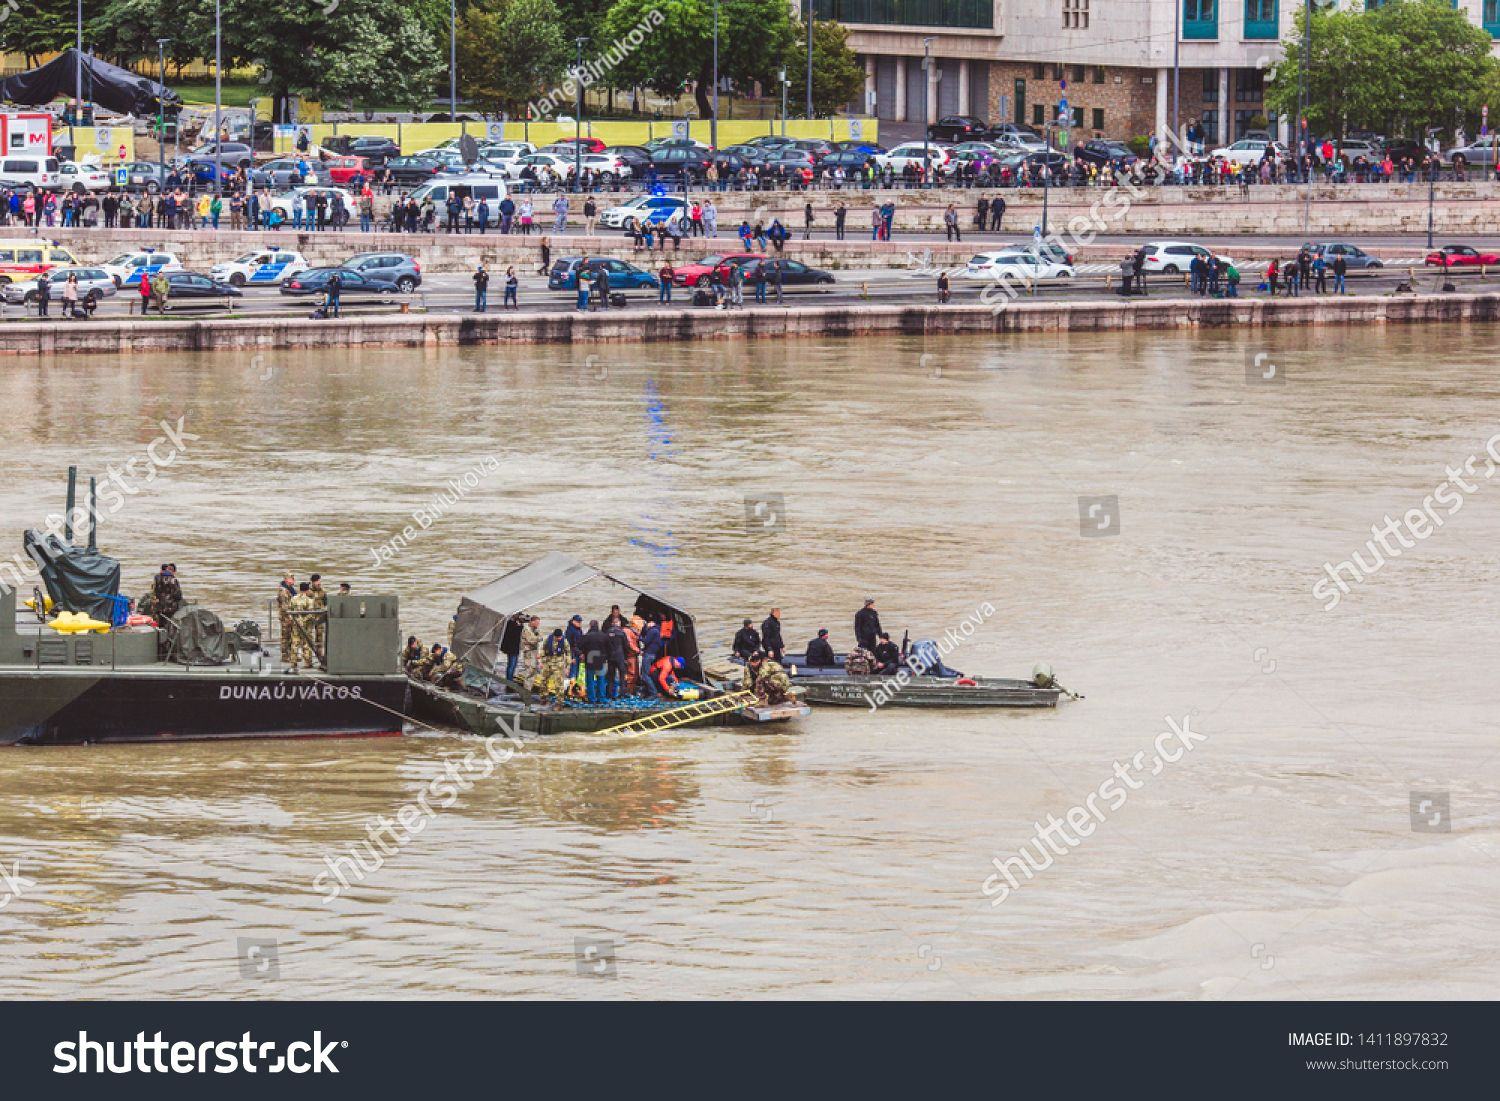 BUDAPEST HUNGARY  MAY 30 2019 Rescue operation on the Danube River near the Margit bridge after the tragedy of May 29 in Budapest Hungary Two ships collided on the river